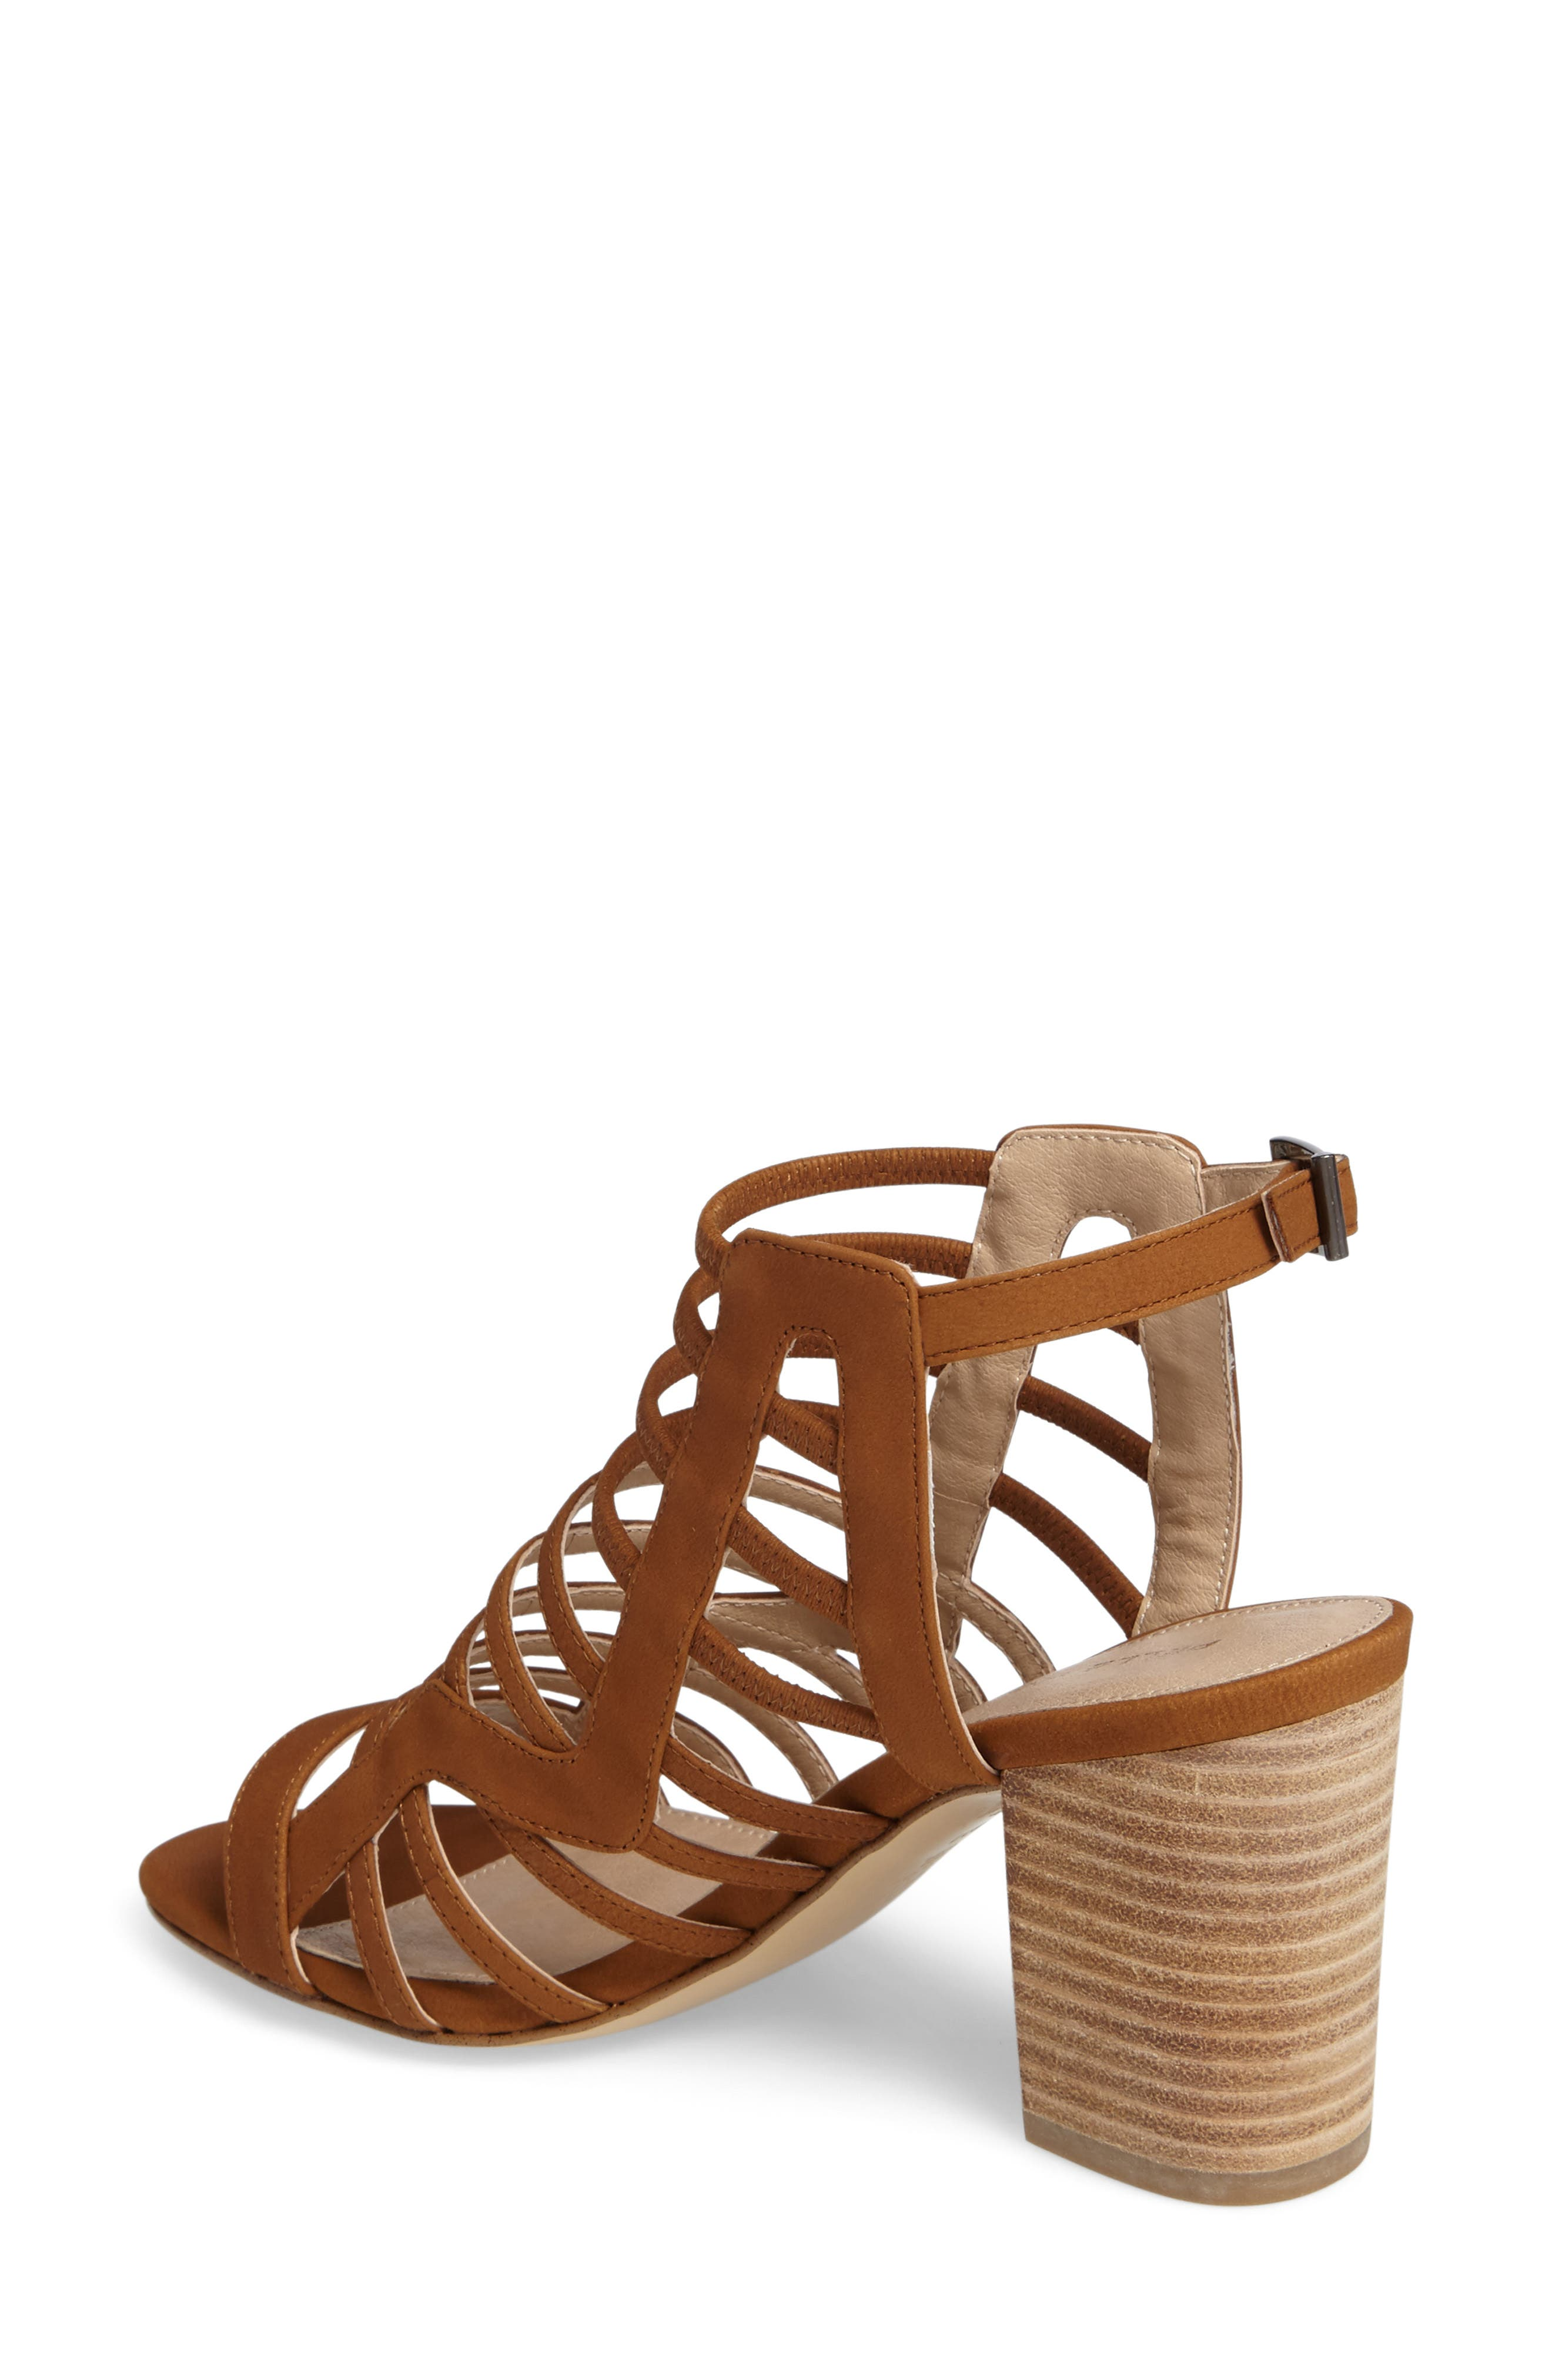 Bonitta Cage Sandal,                             Alternate thumbnail 2, color,                             Luggage Leather